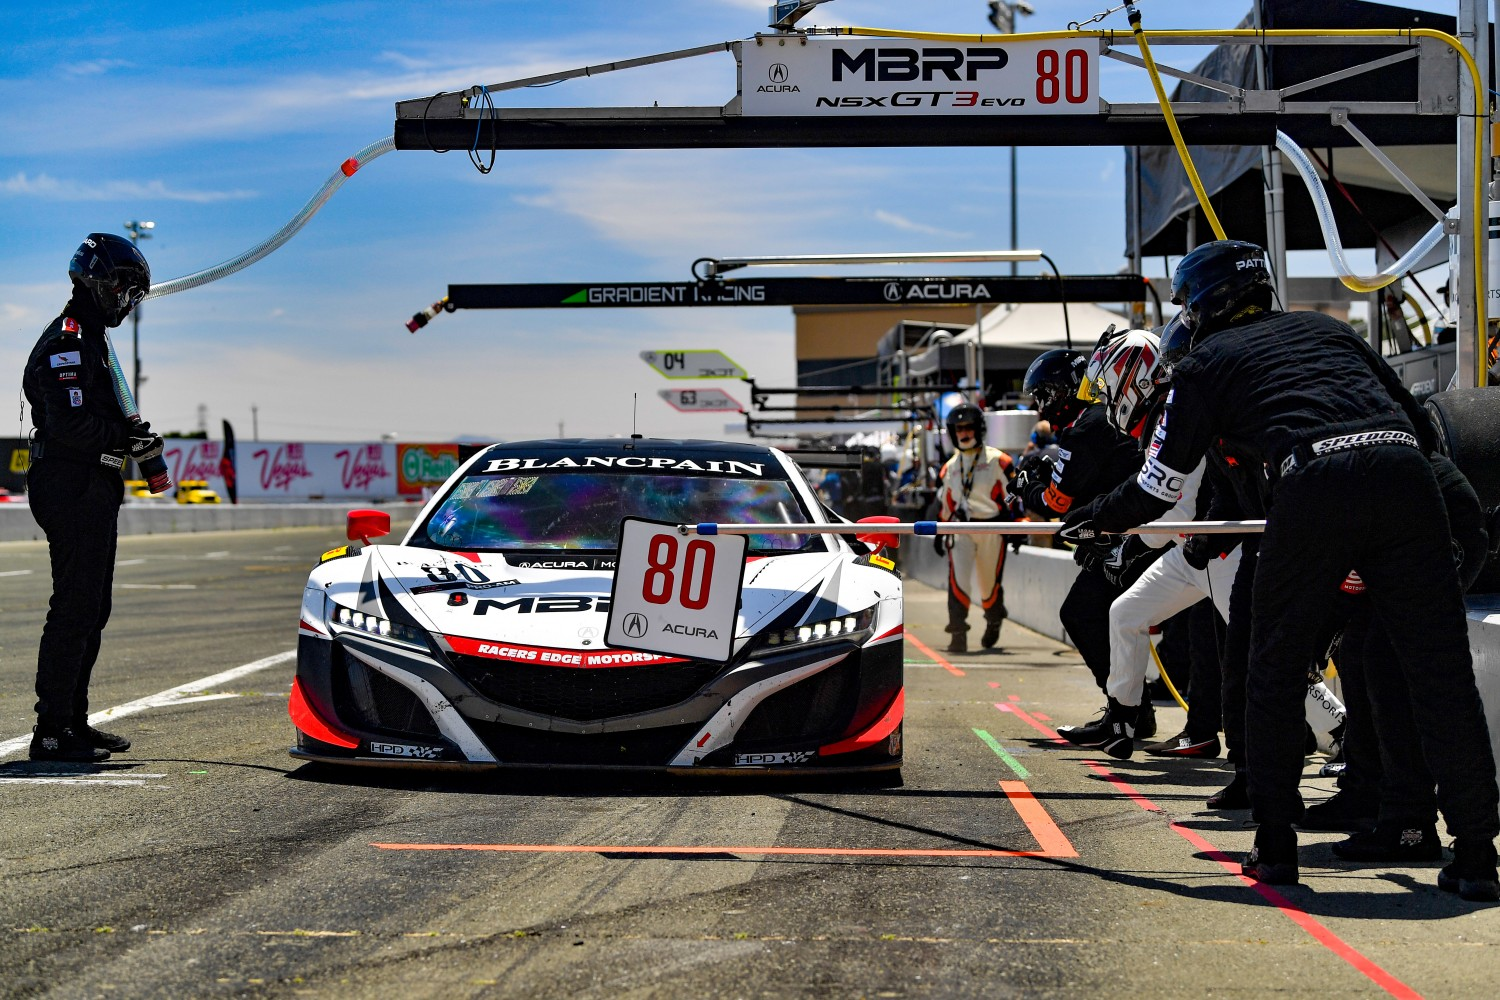 #80 Acura NSX of Martin Barkey and Kyle Marcelli   SRO at Sonoma Raceway, Sonoma CA | Gavin Baker/SRO